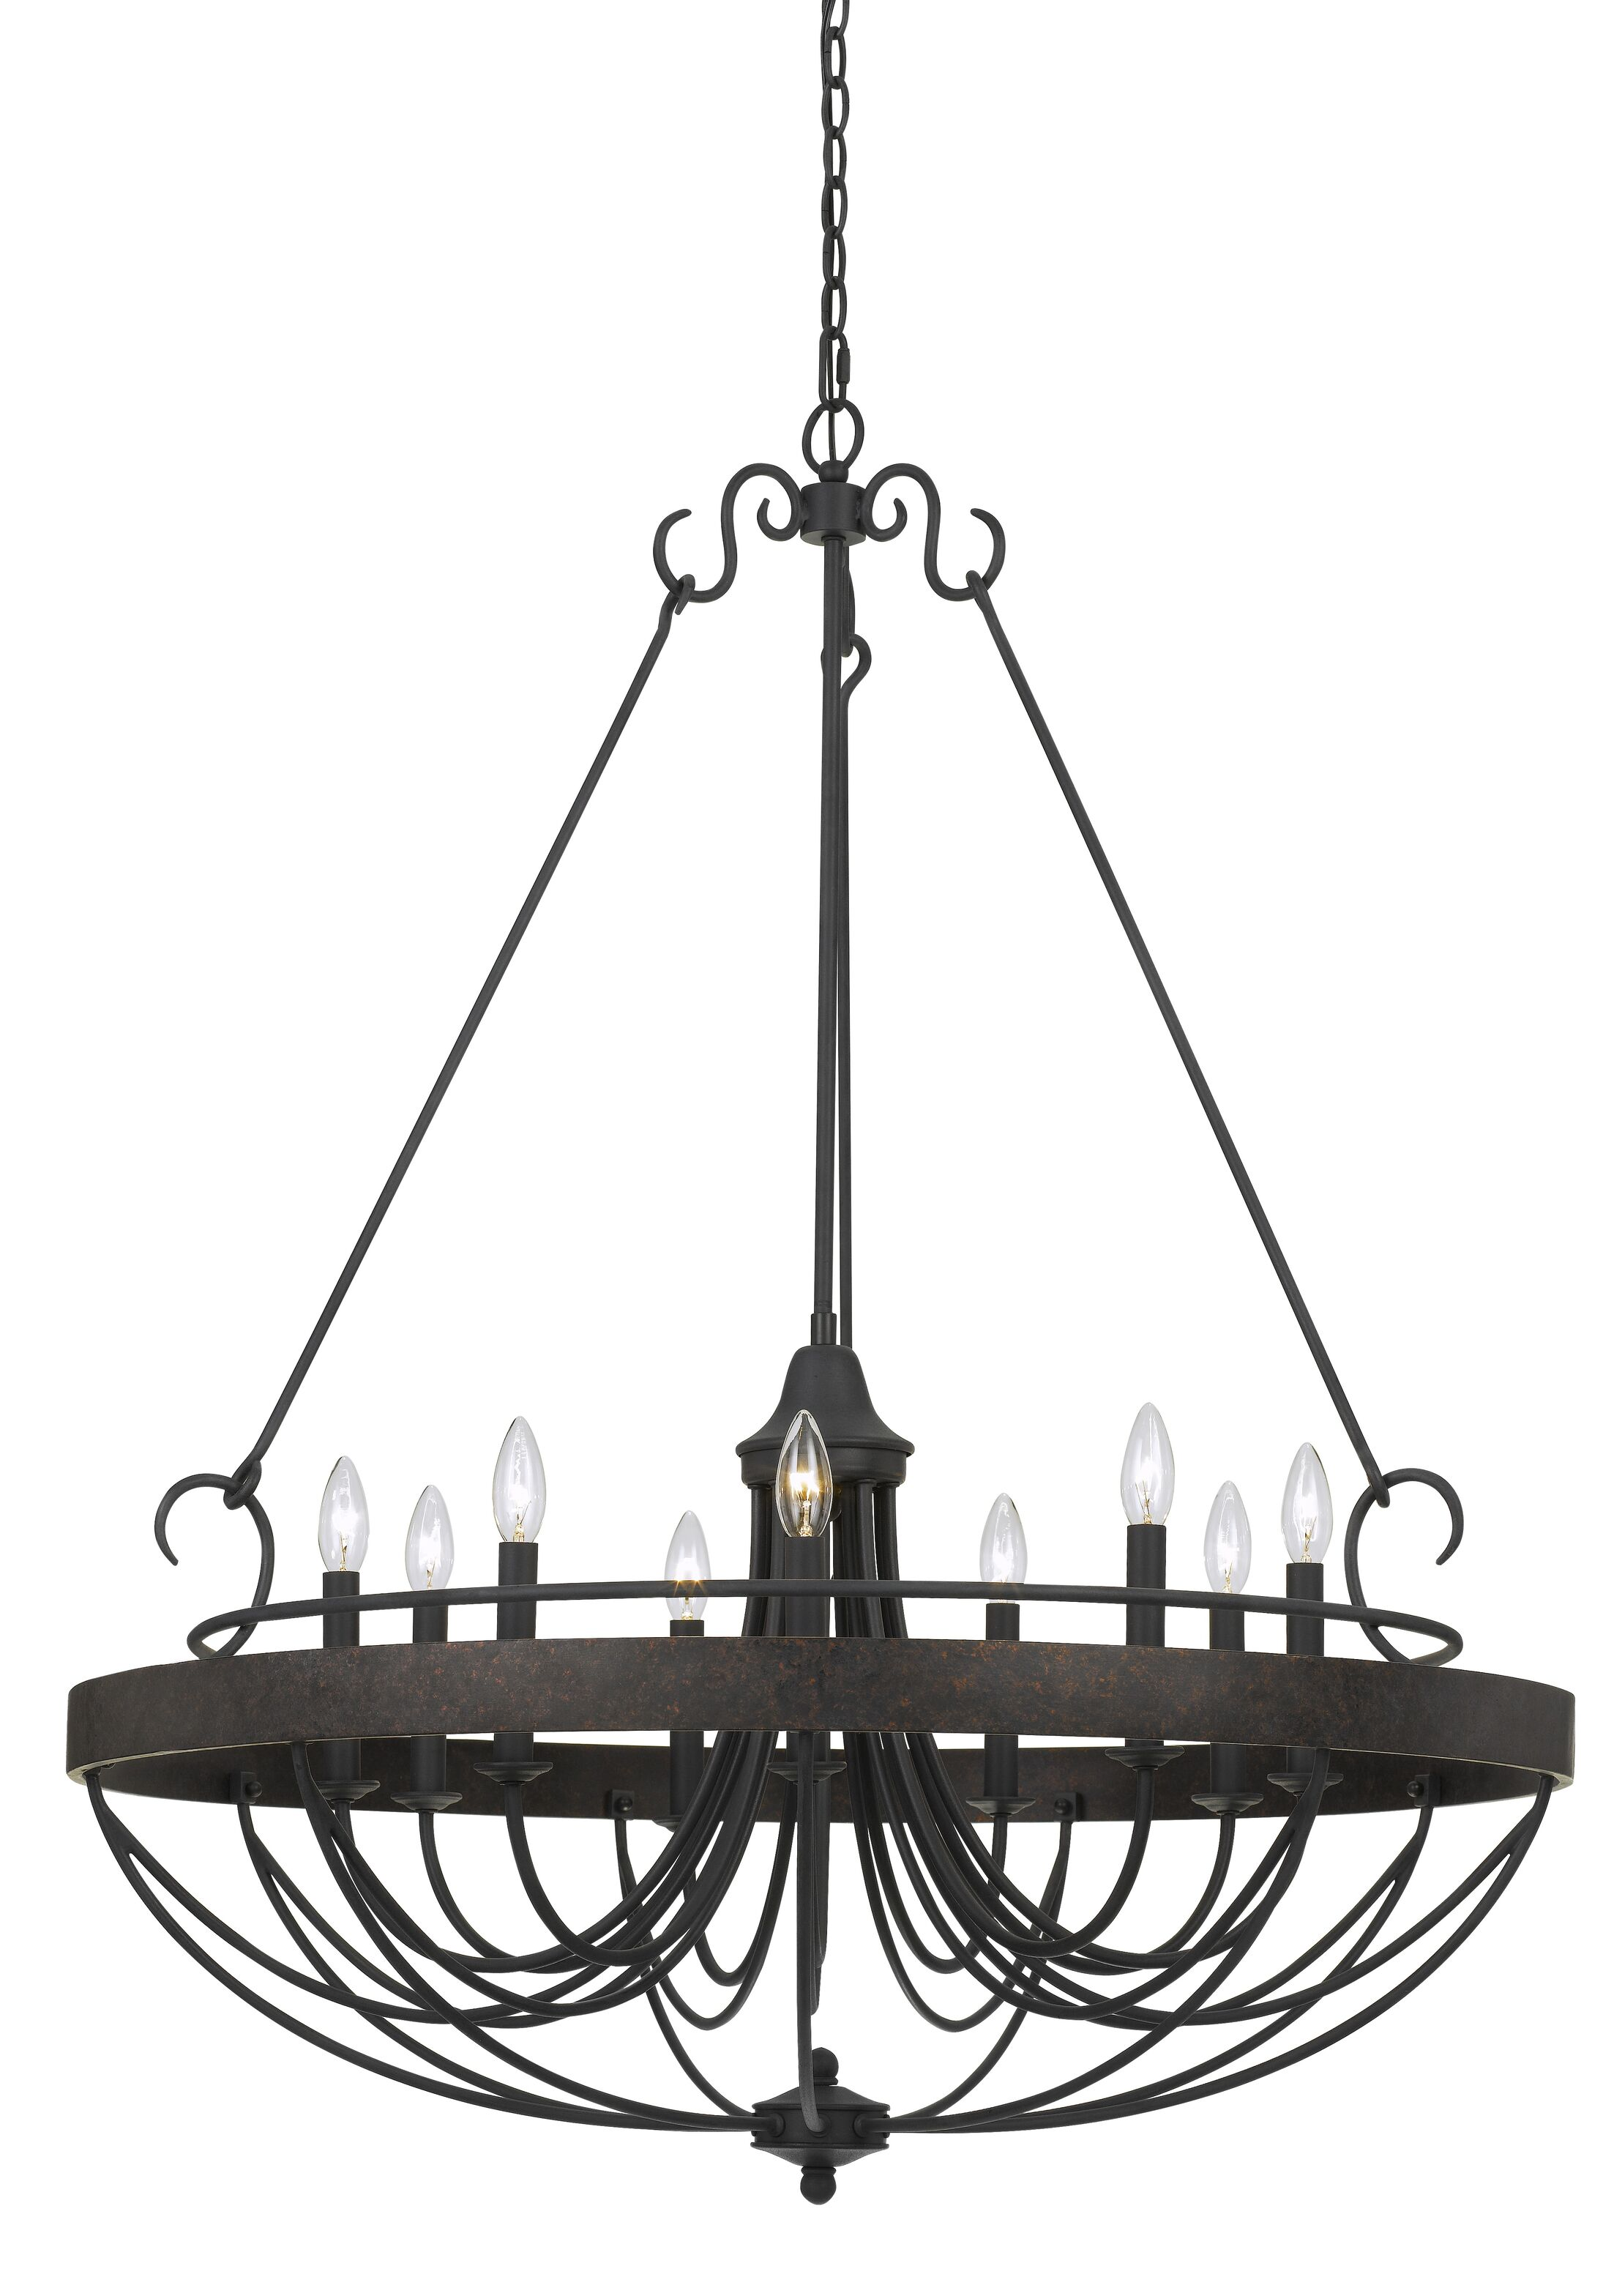 Beuvron 9-Light Candle Style Chandelier